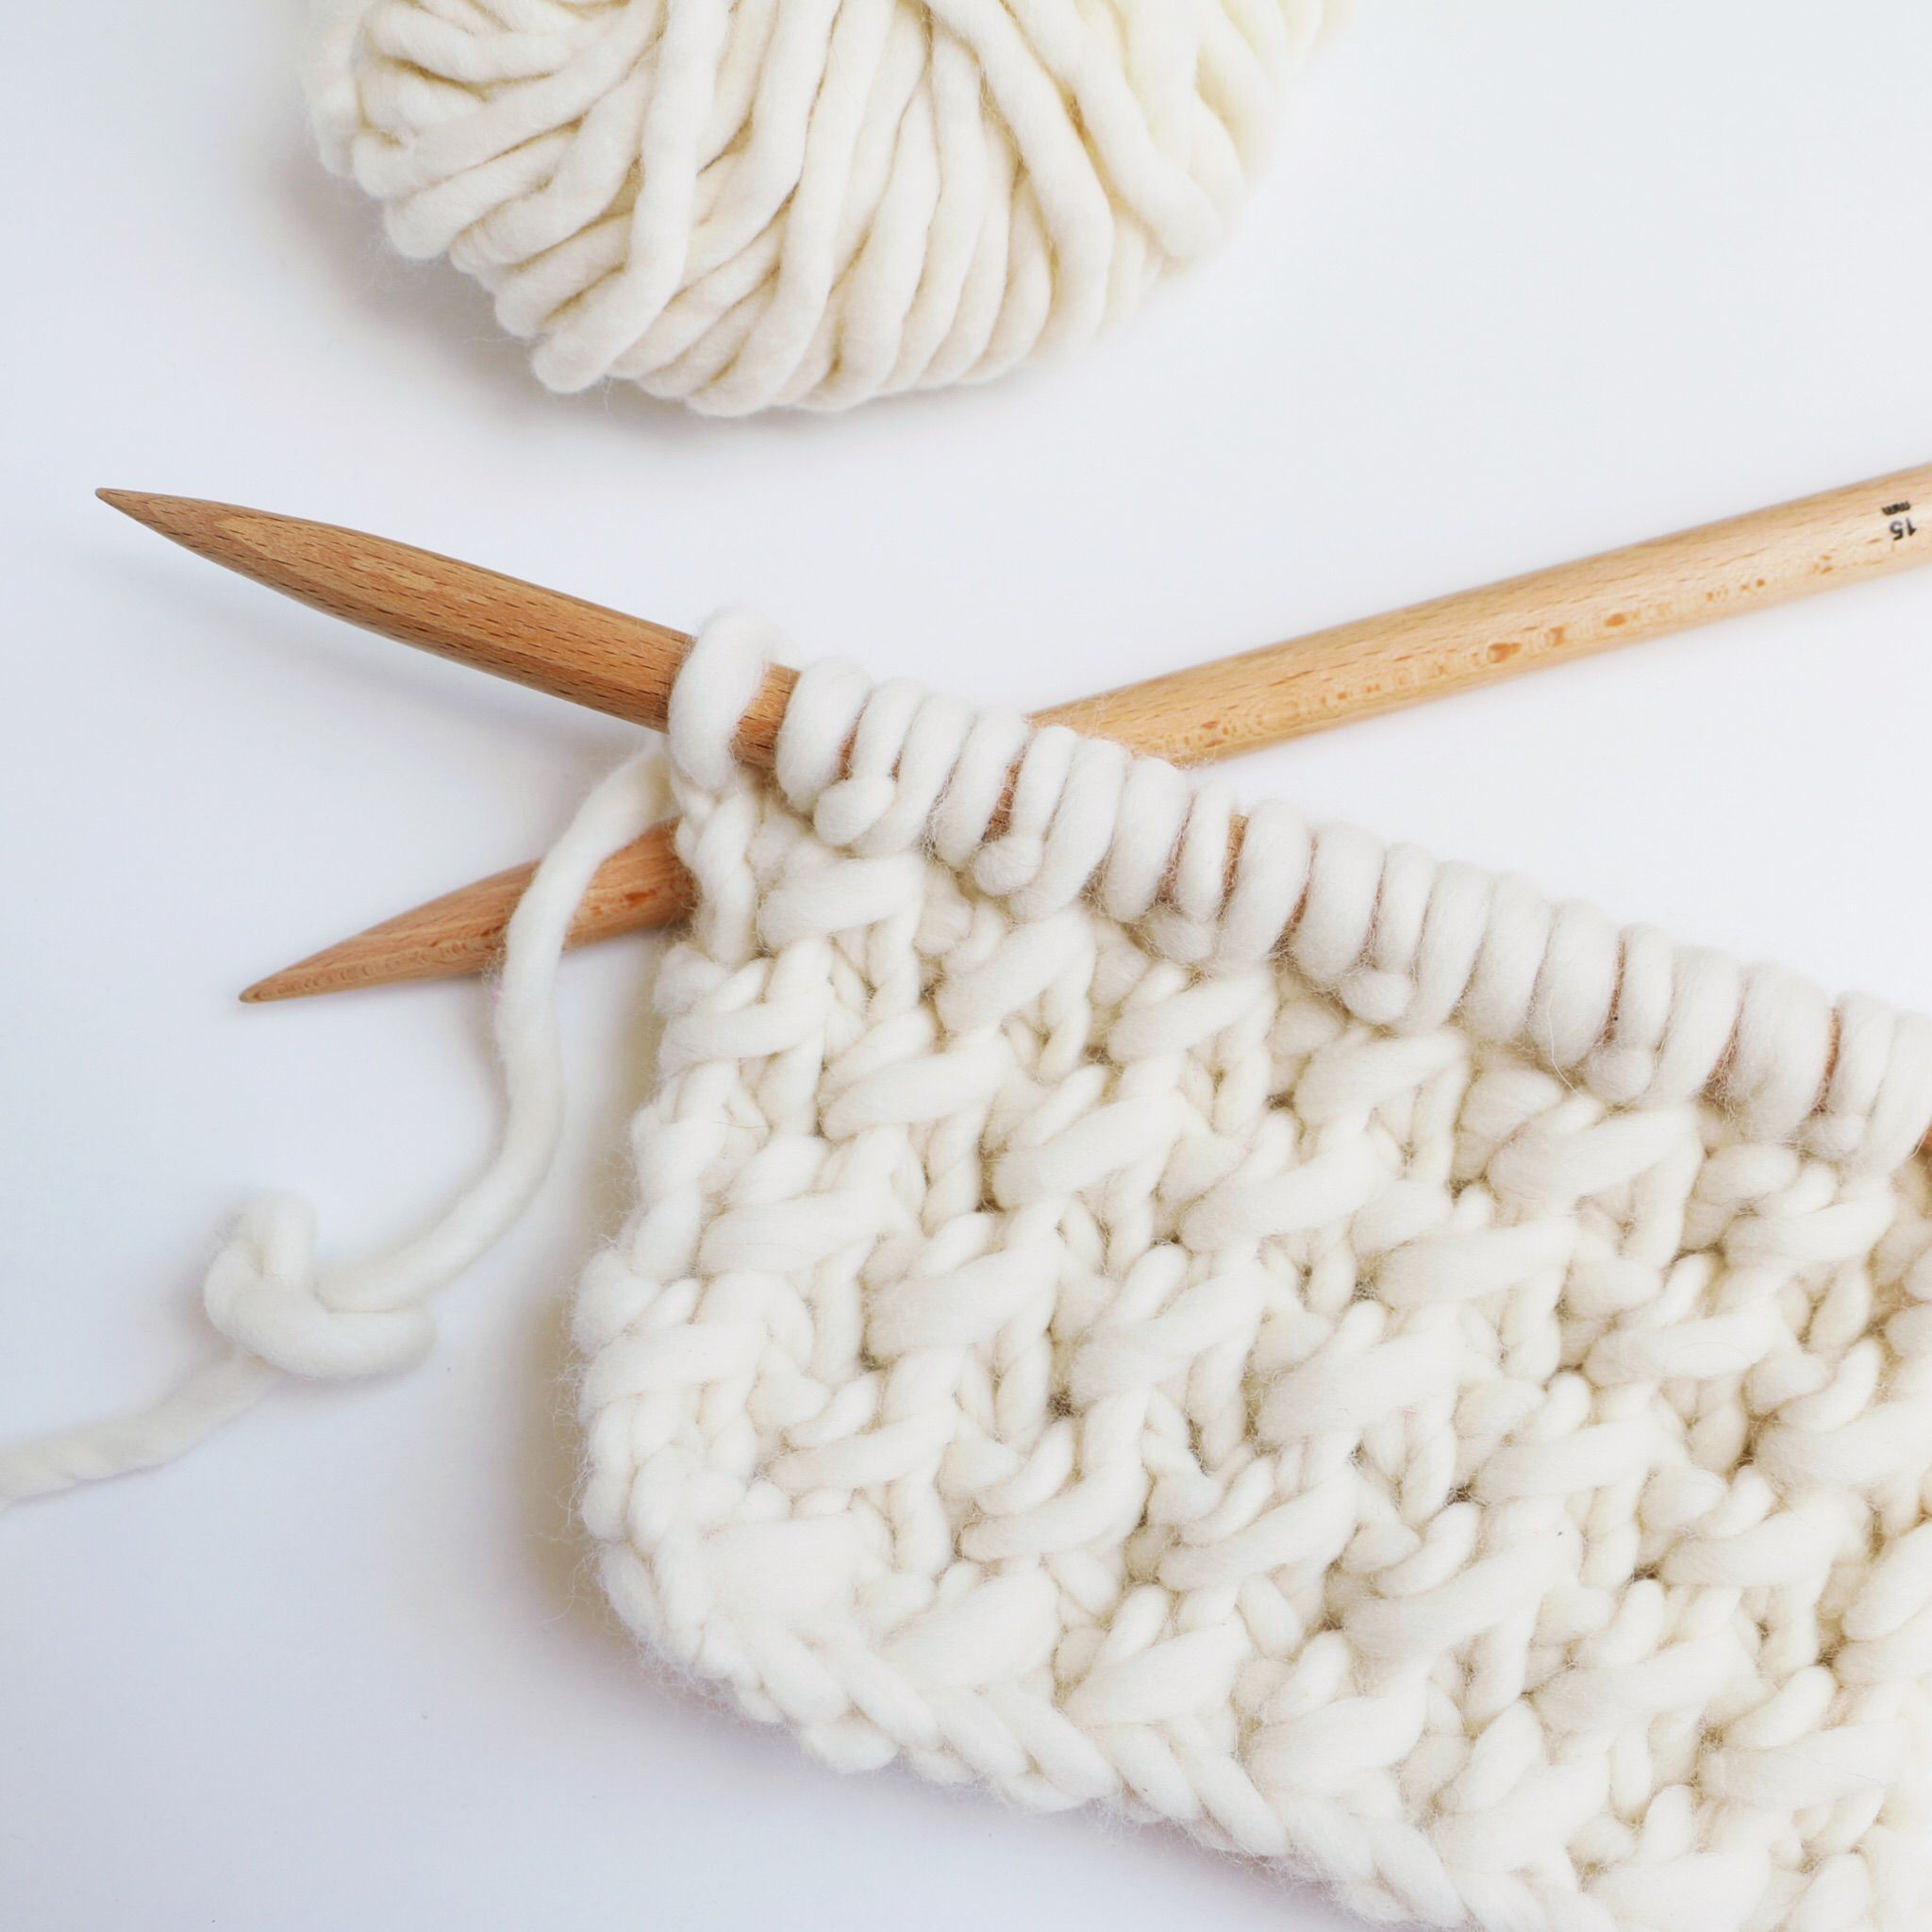 Le Point Cellules Knitting Pinterest Tricot Stitch And Tutorials